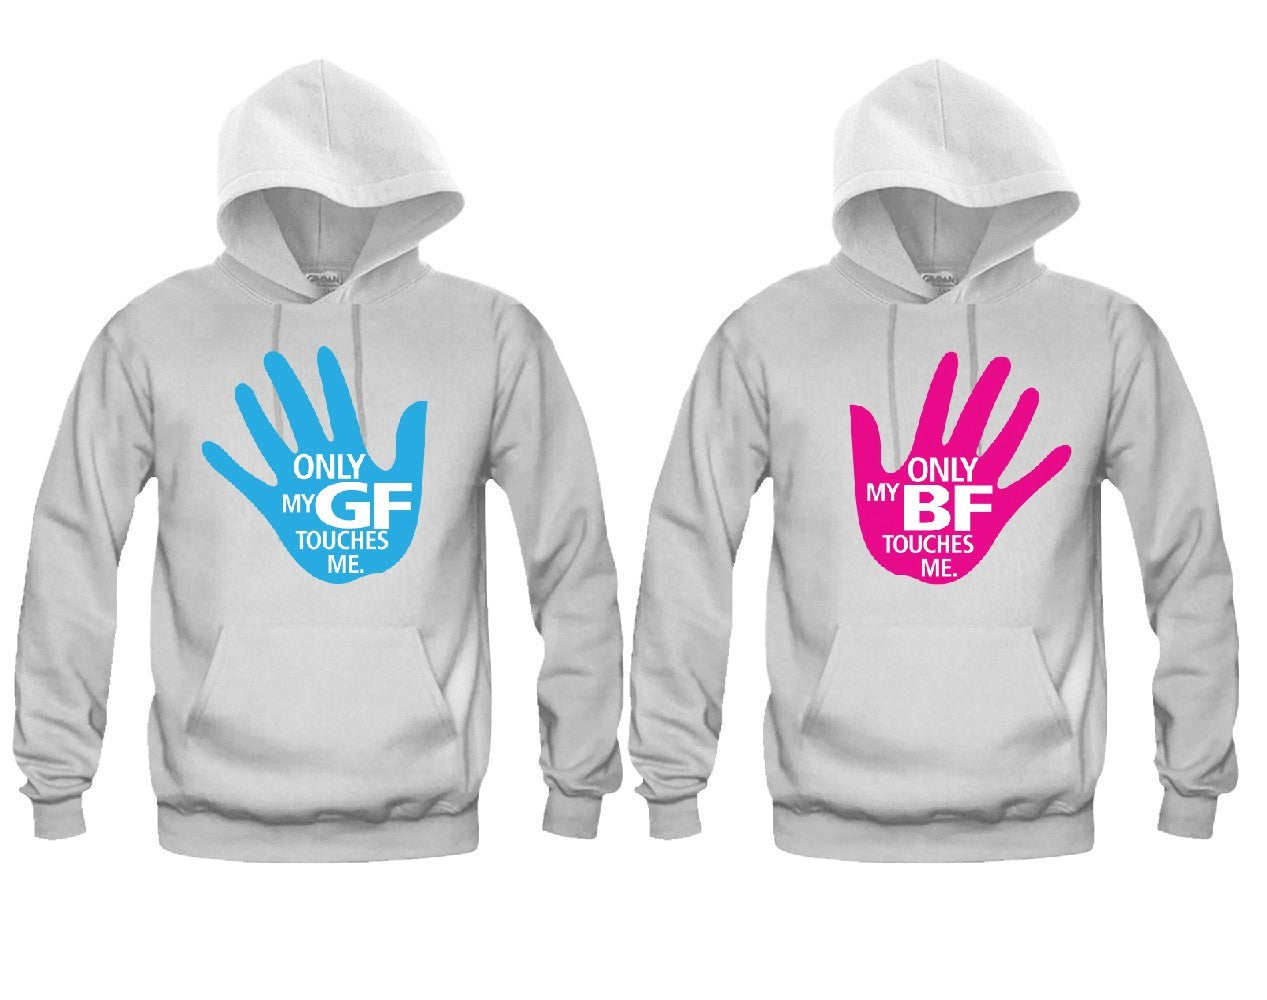 4d87aadb05 Only My GF Touches - Only My BF Touches Me Unisex Couple Matching Hoodies